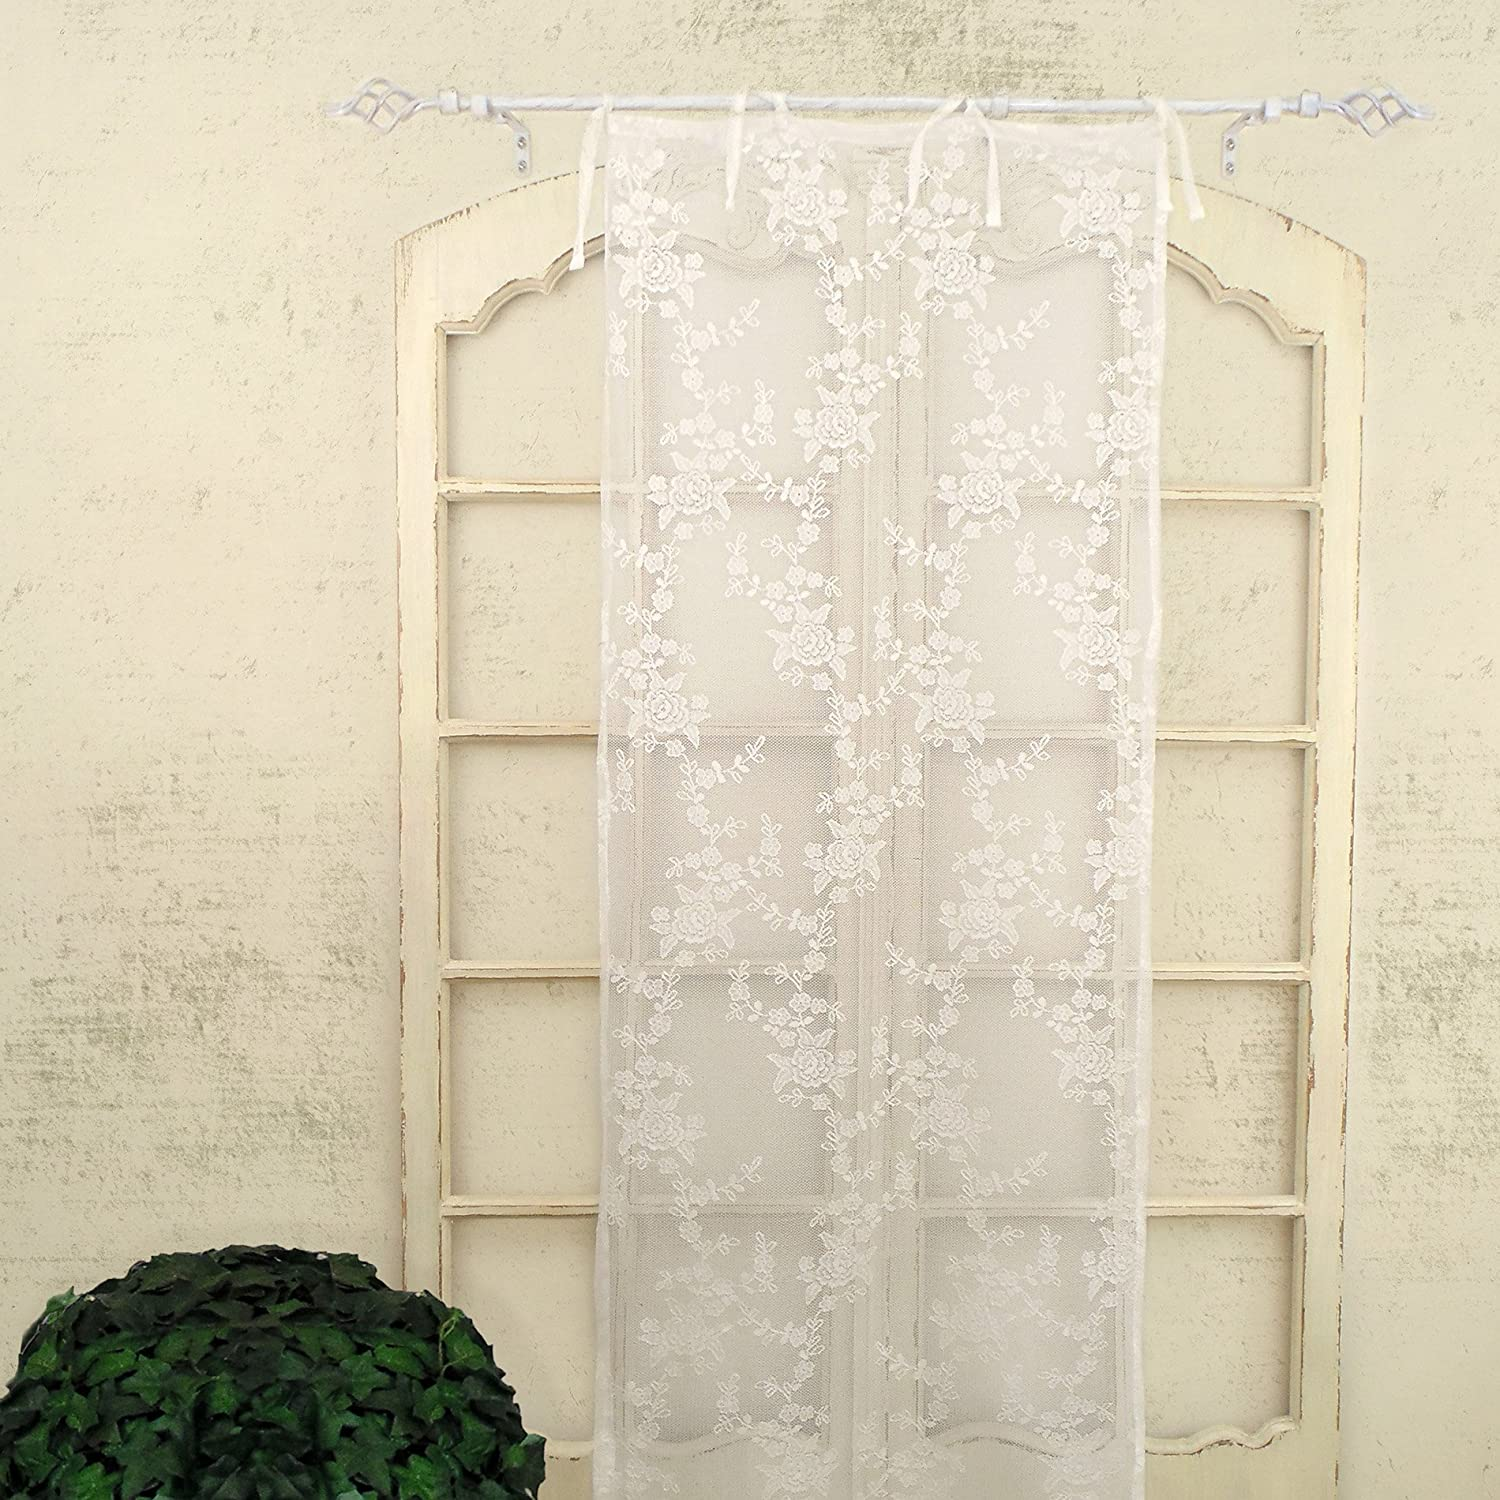 Tenda finestra Pizzo Poliestere Shabby Chic Poly-Ciel Collection 60 x 220 Colore Bianco AT17